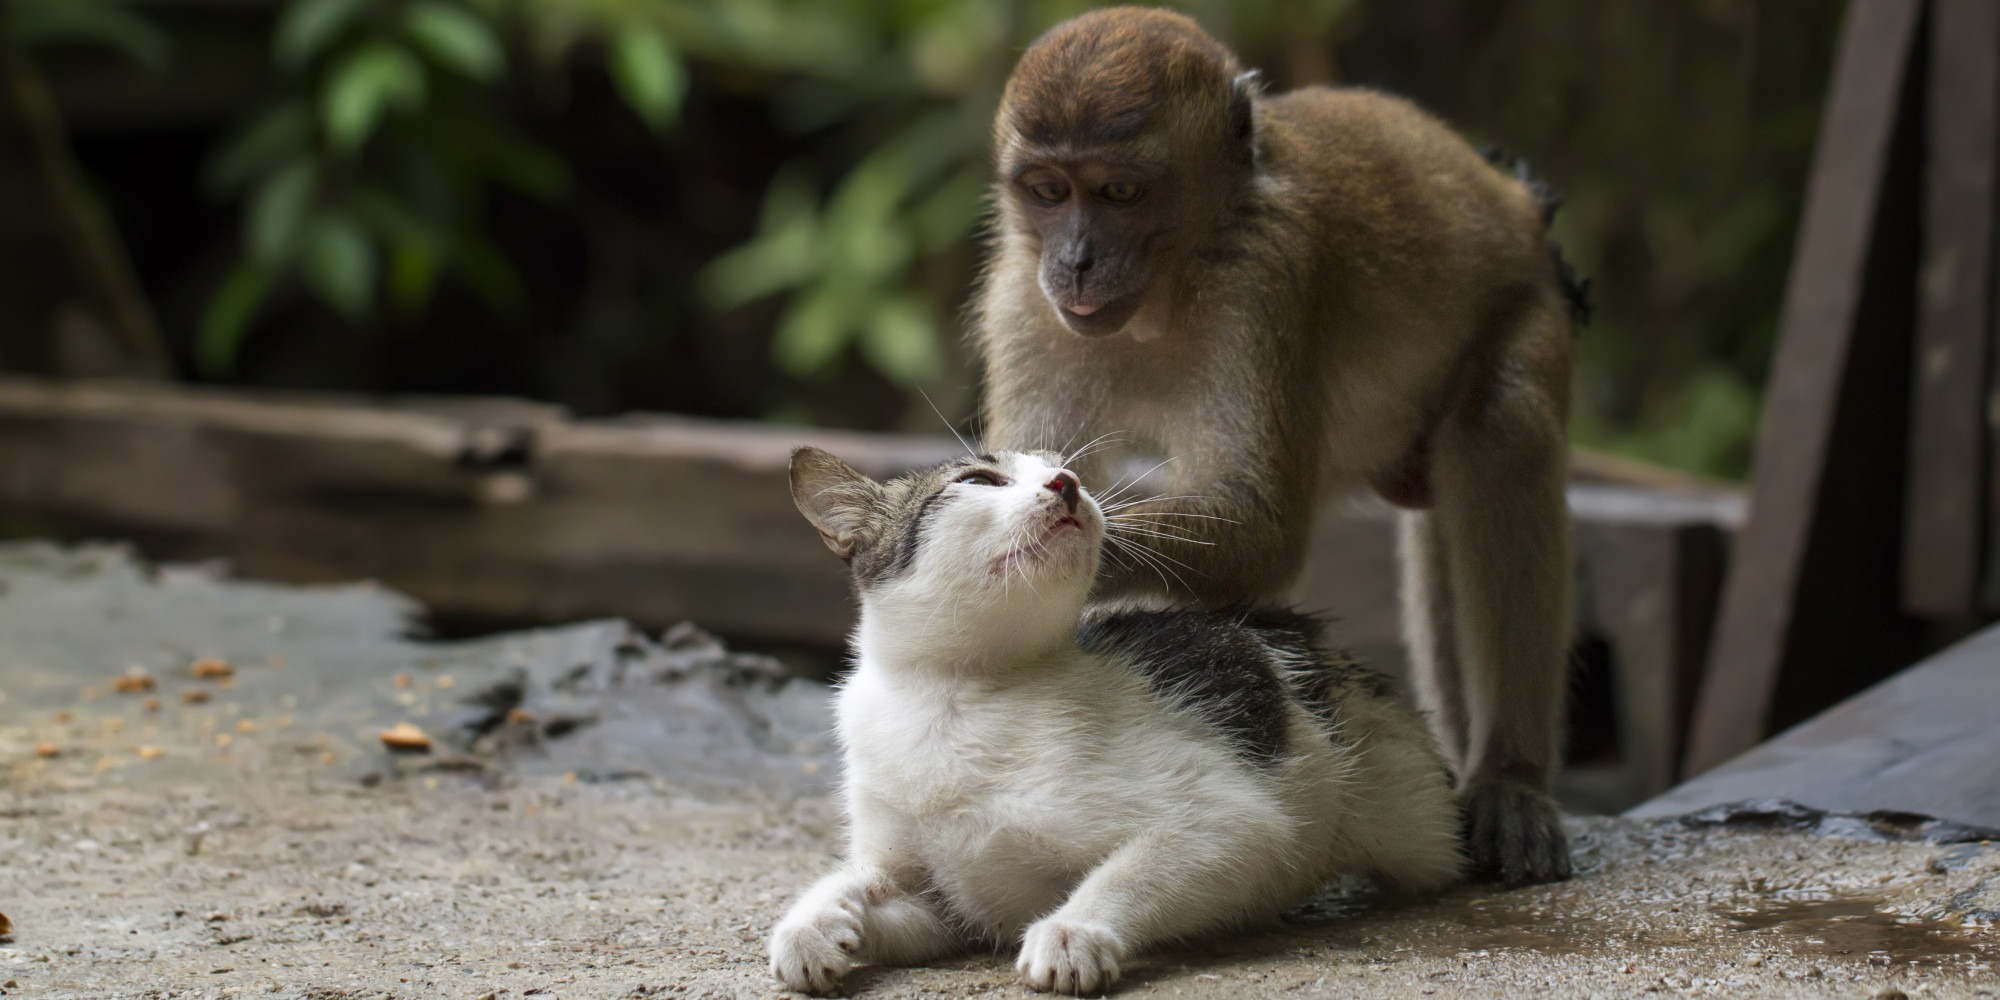 Monkey Massages Cat, And It's Adorable (PHOTOS) | HuffPost